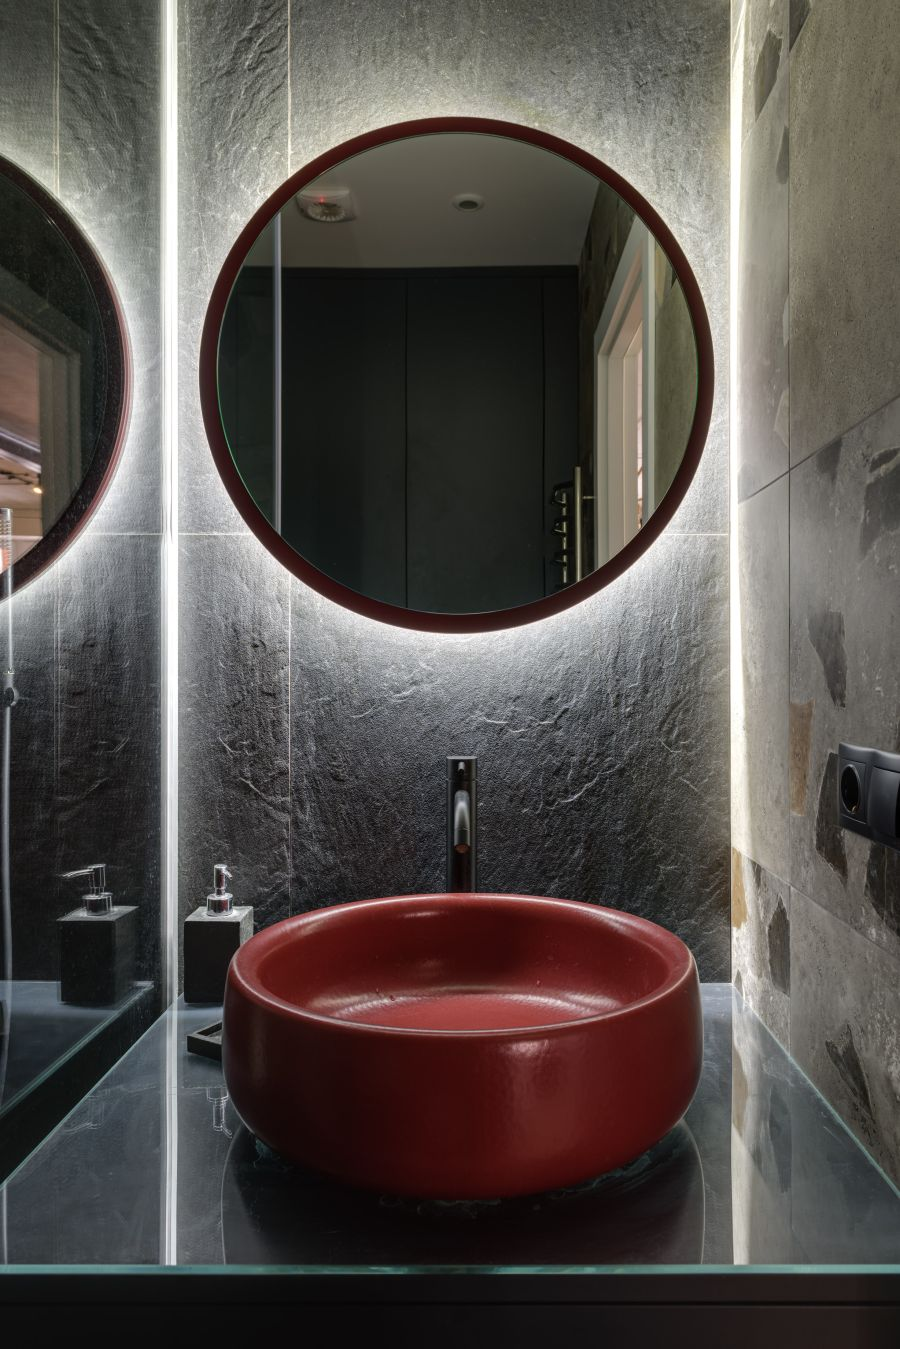 The red washbasin and circular mirror frame really help this bathroom pop in a chic way